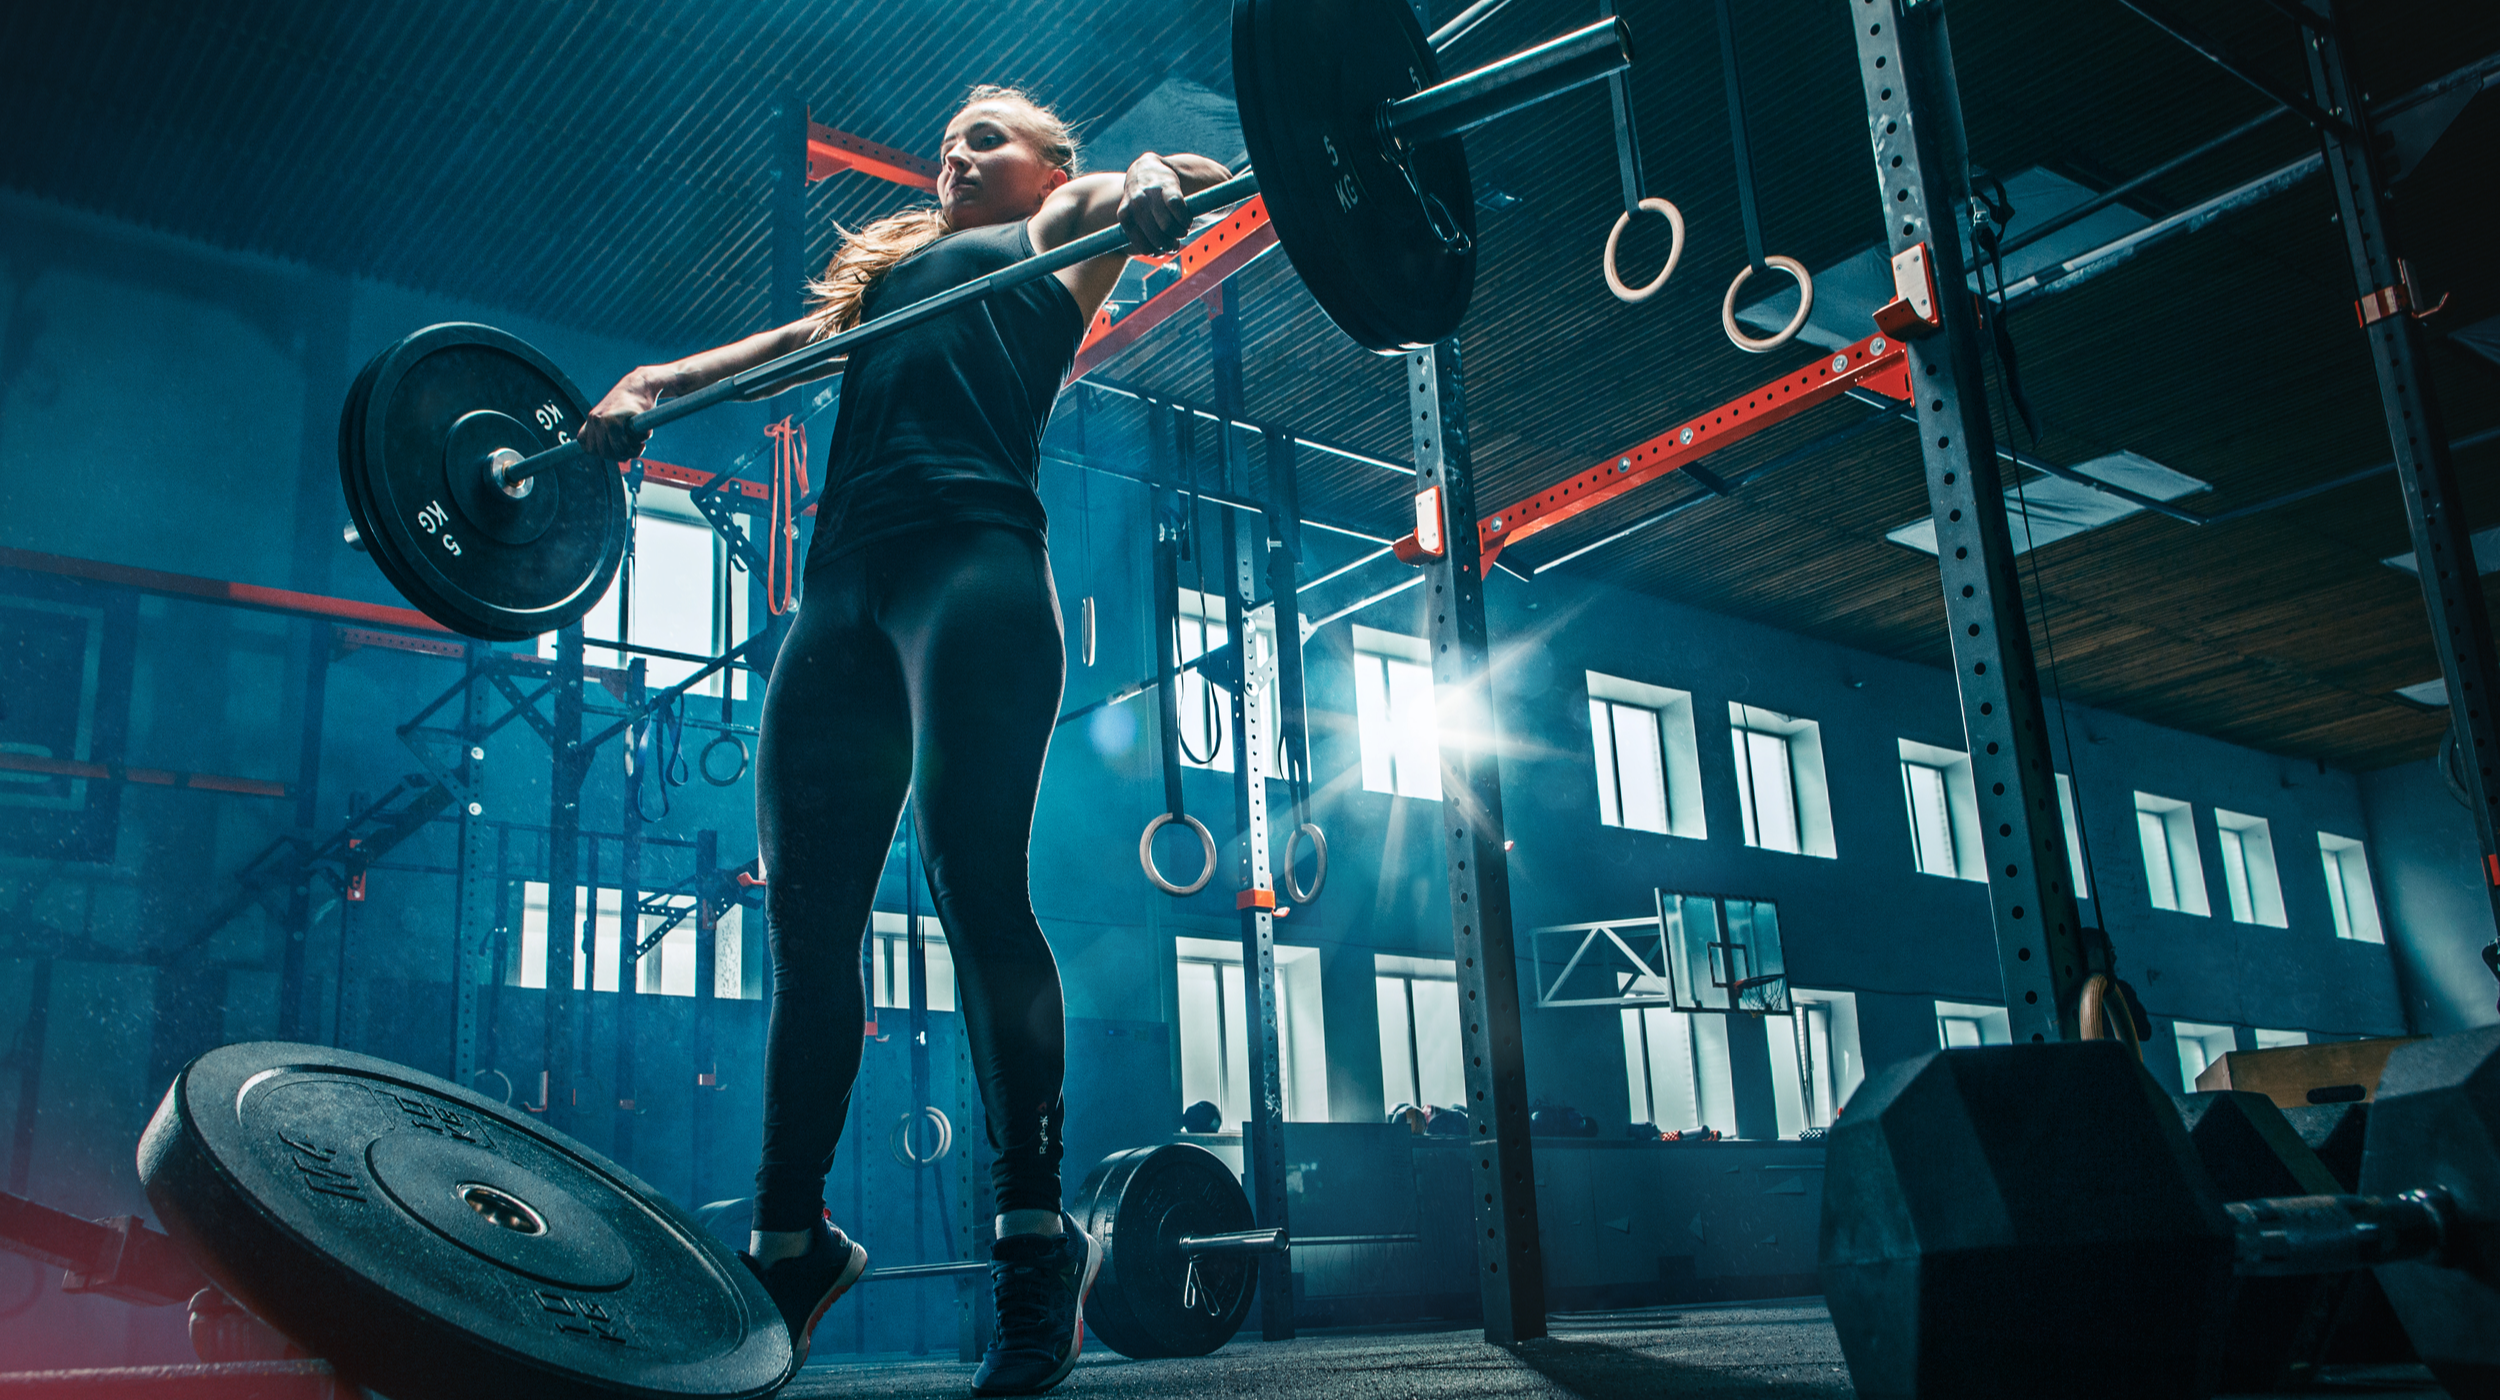 Resistance Training For Athletes